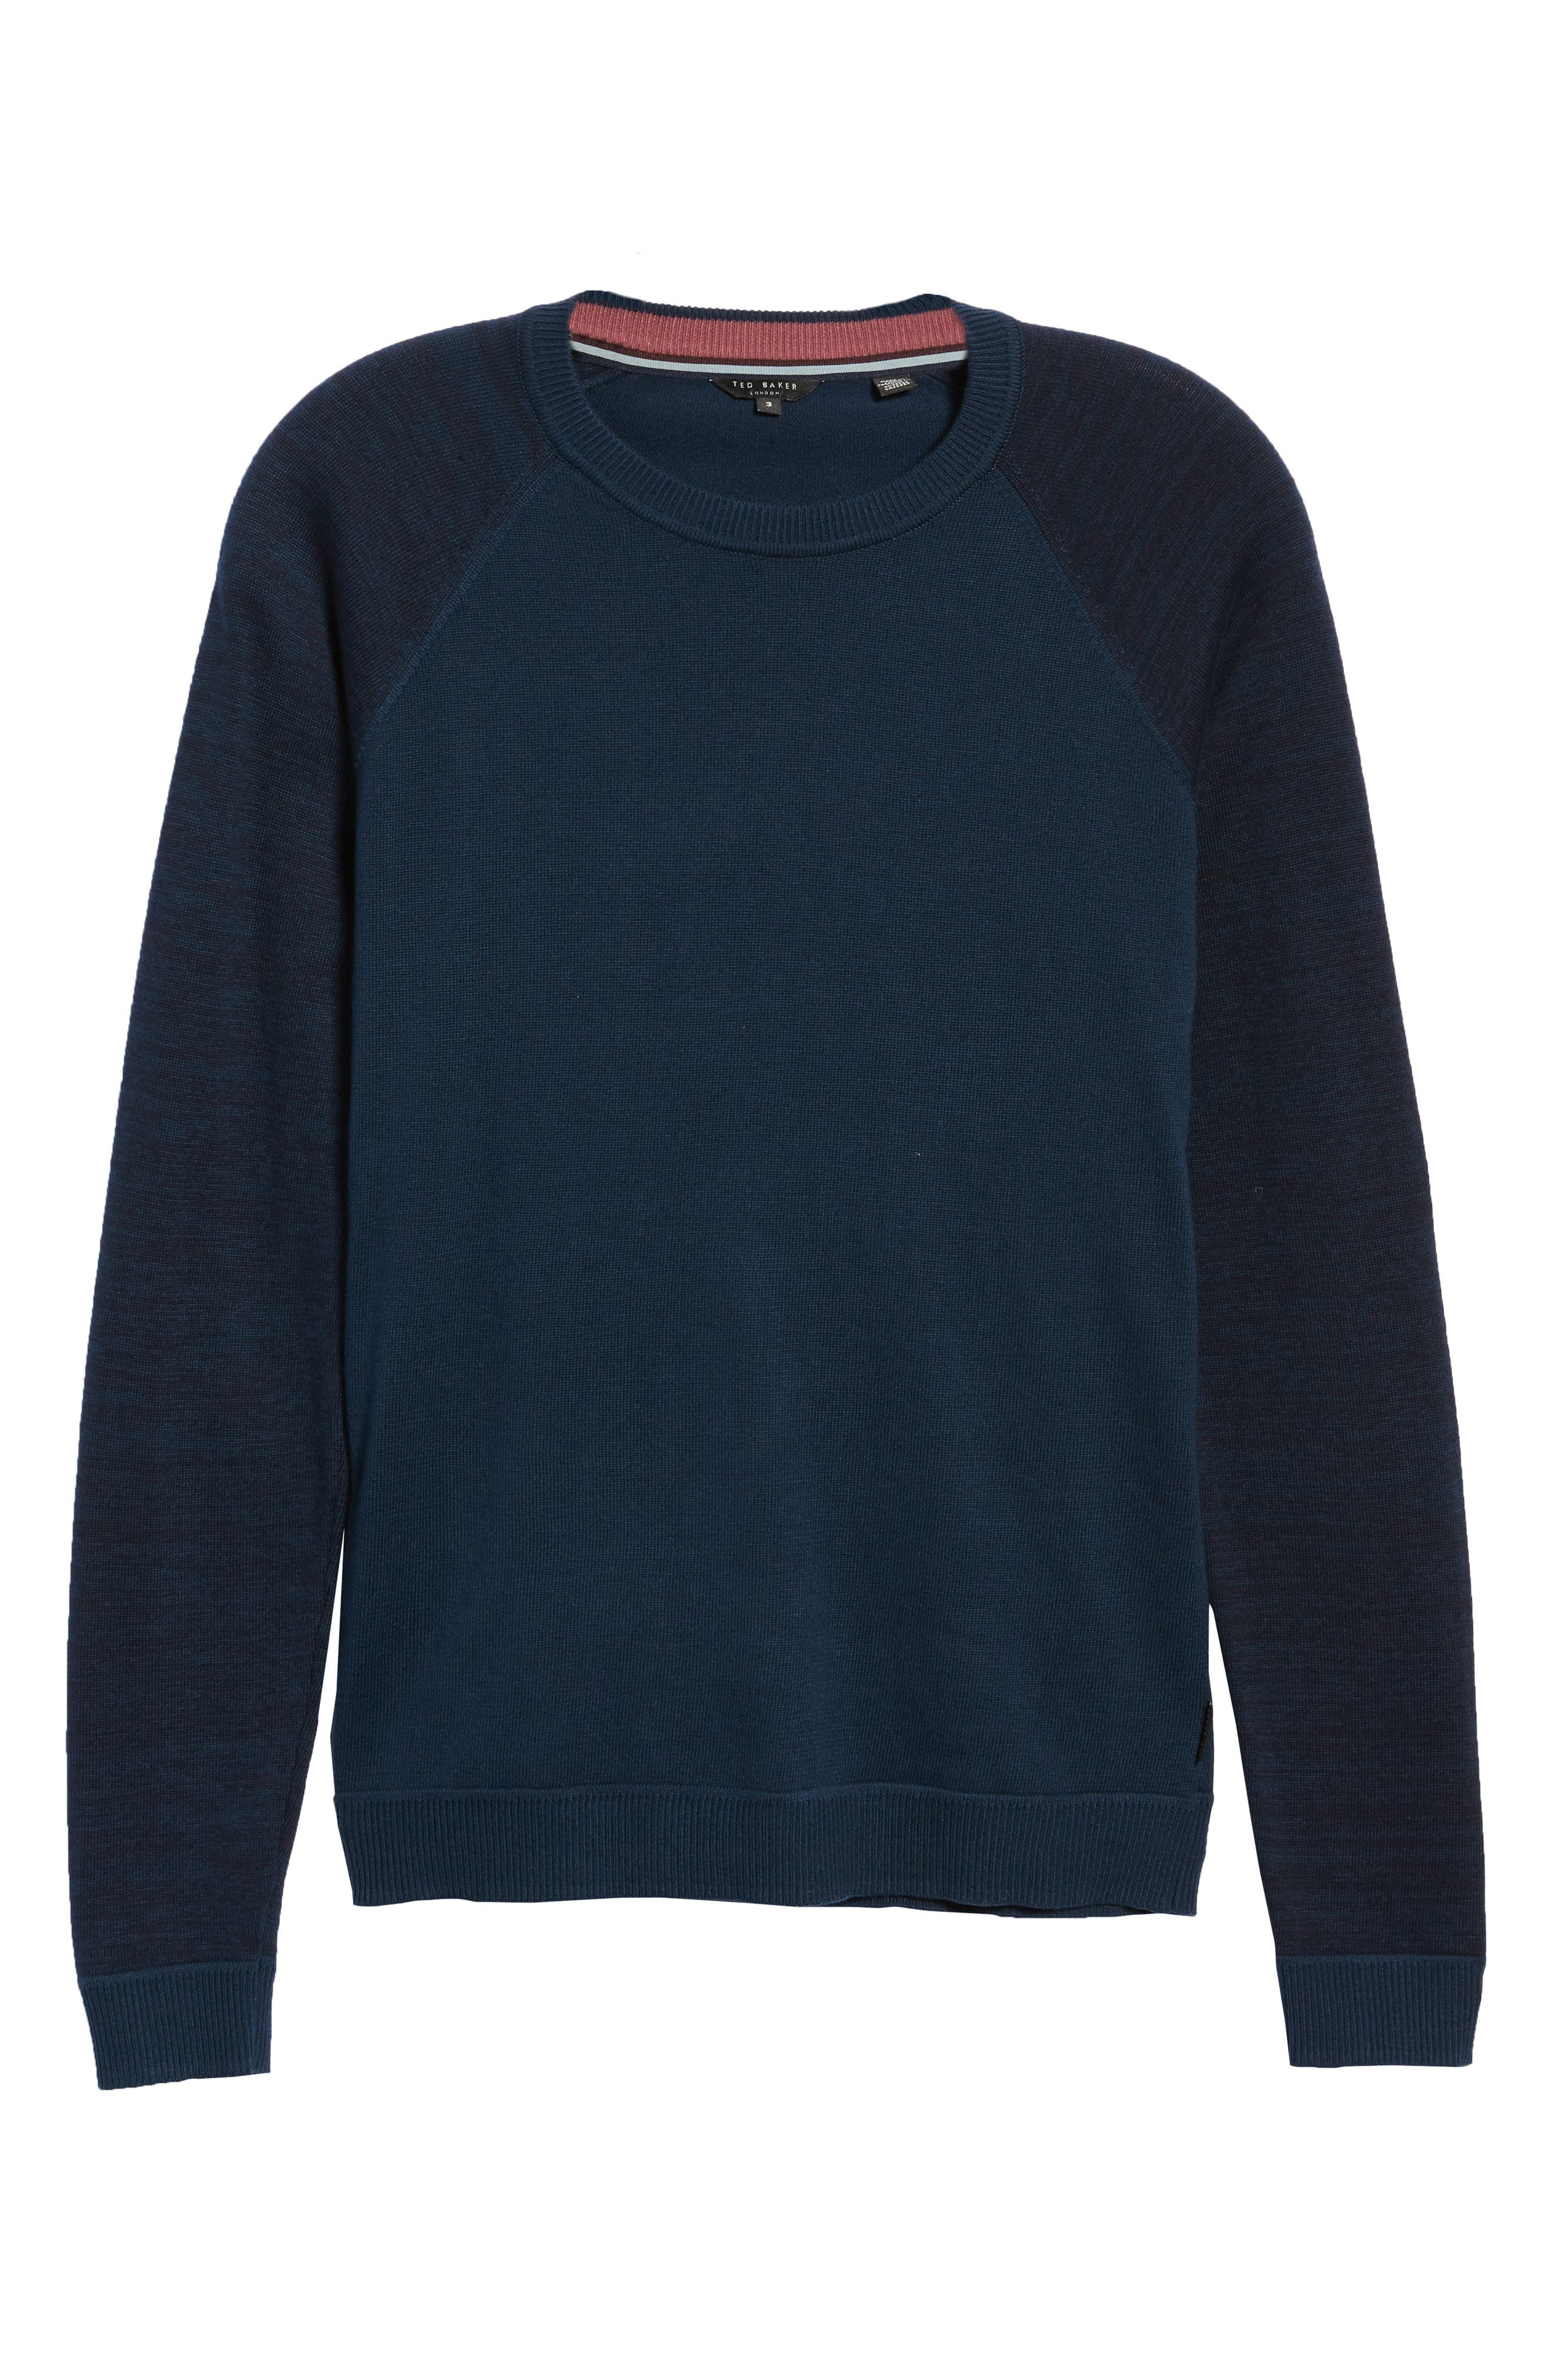 Cornfed Slim Fit Sweater,                             Alternate thumbnail 6, color,                             TEAL-BLUE